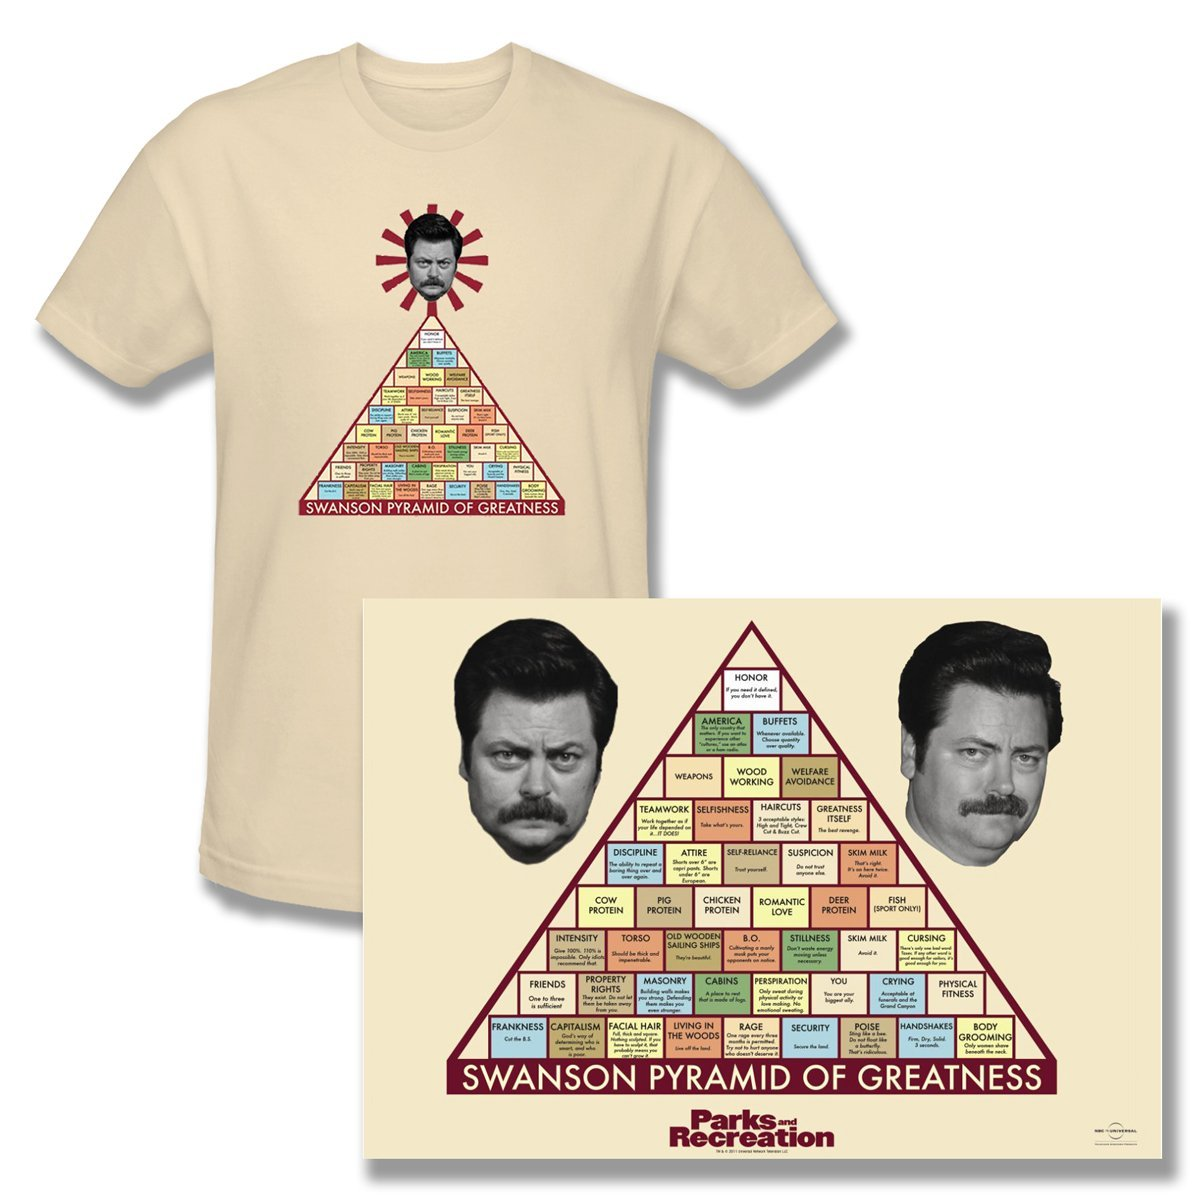 Pyramid of Greatness – Parks and Recreation